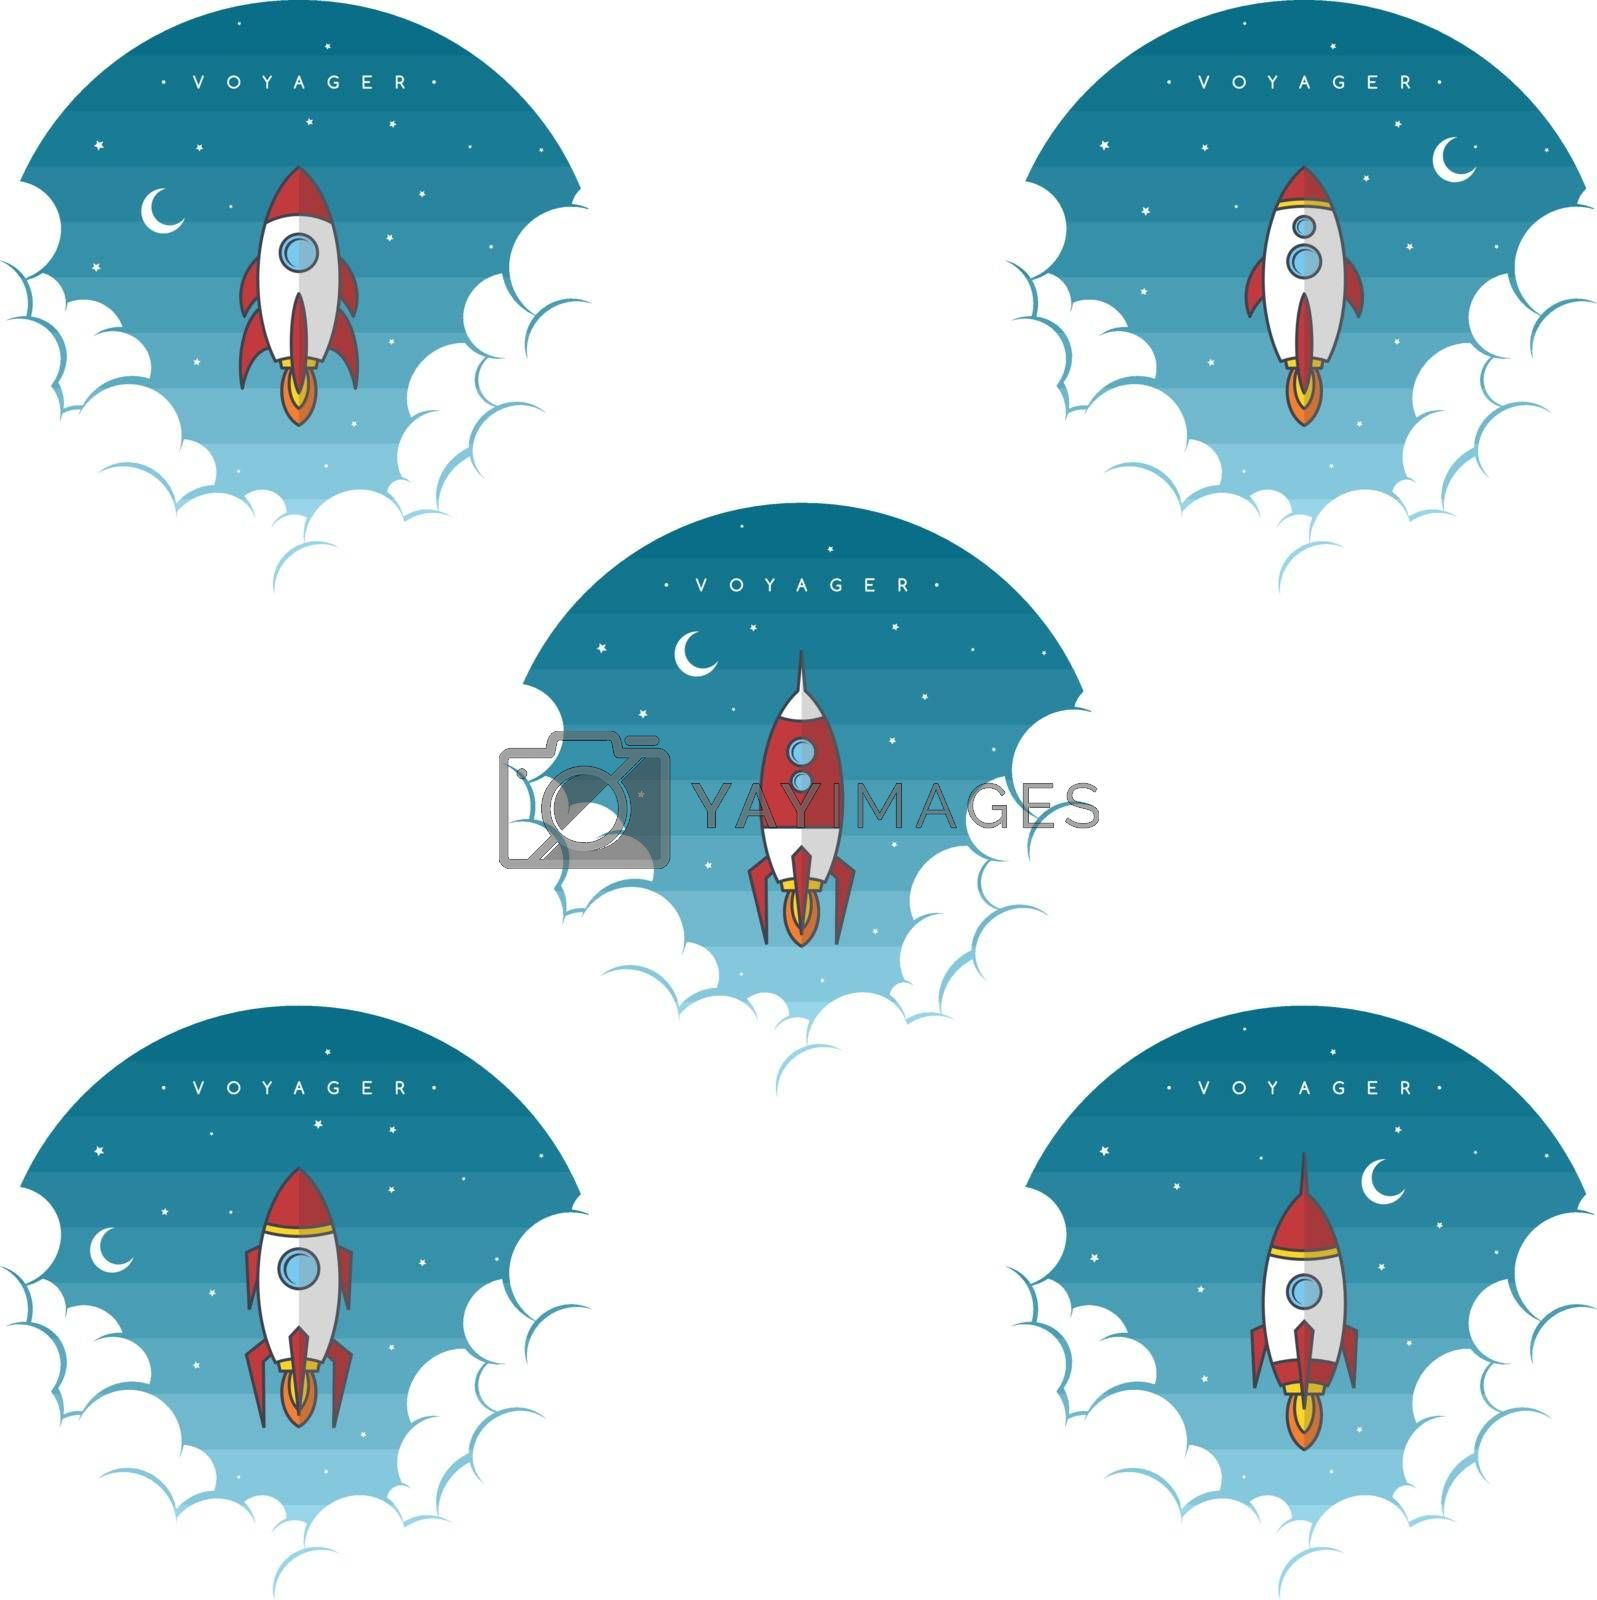 Royalty free image of rocket launch space ship for galaxy exploration set by vector1st